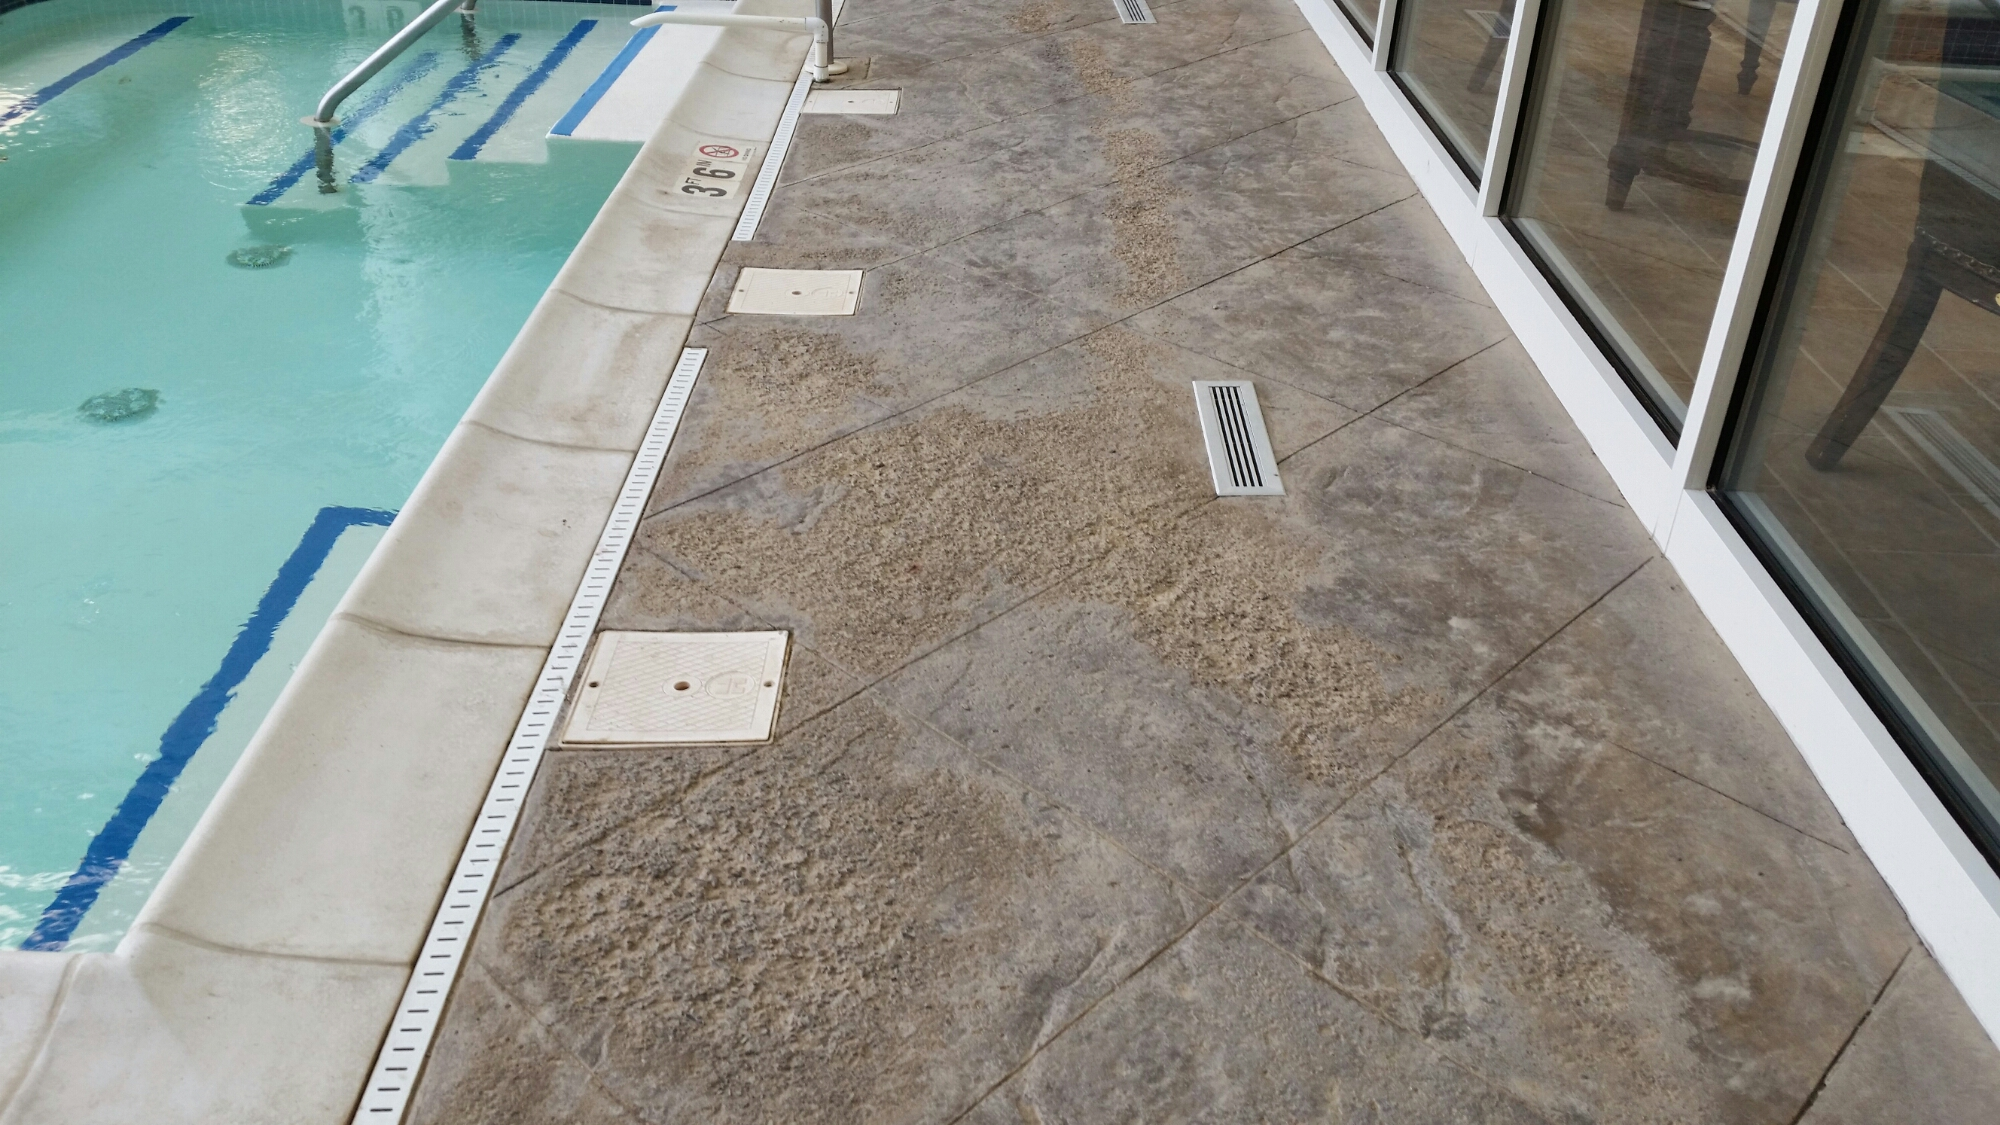 This pool is pitted and etched from salt water from the pool.